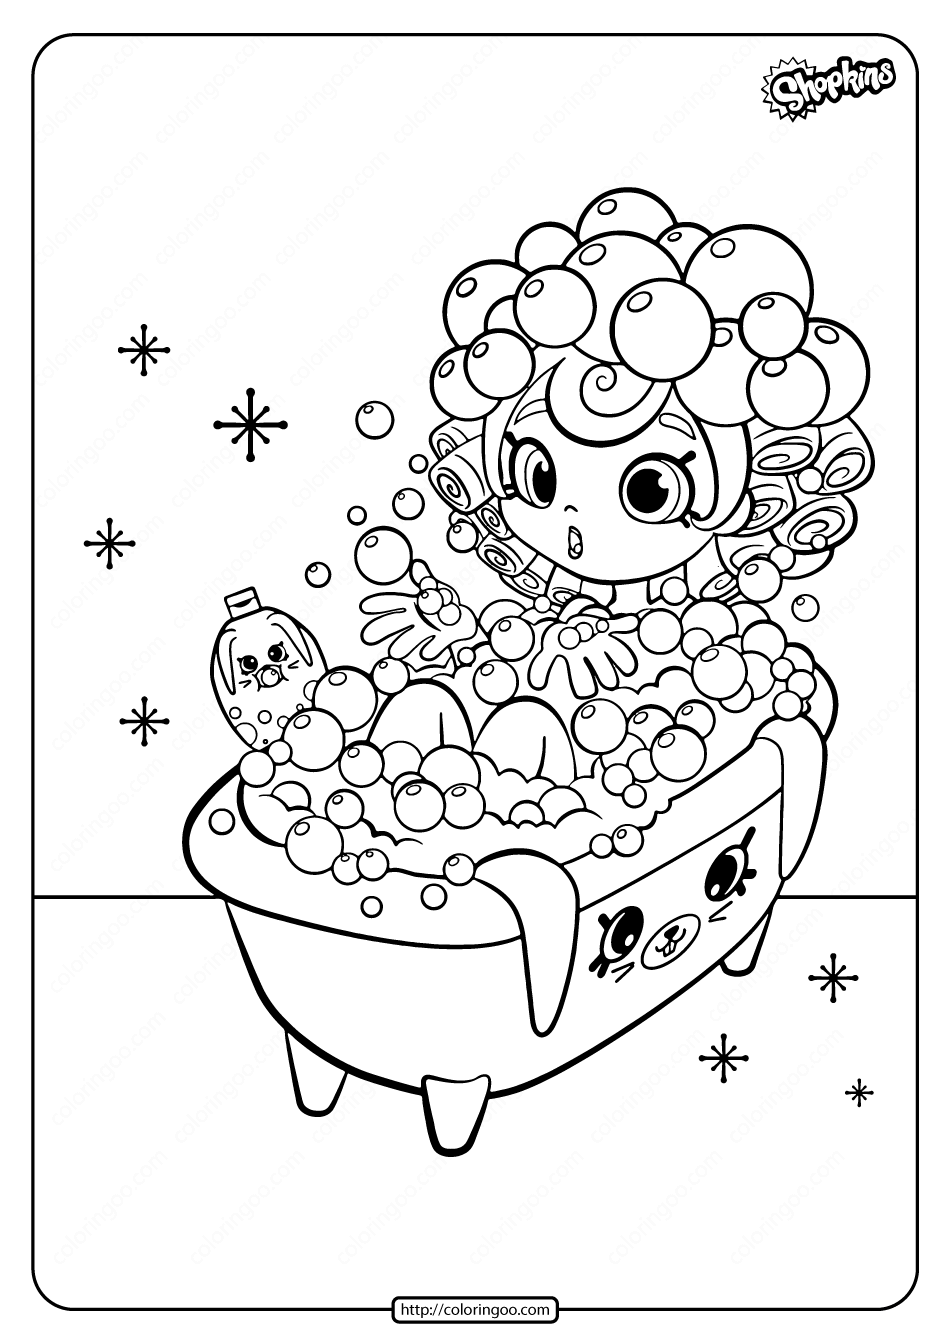 Printable Bubbleisha Shopkins Coloring Pages